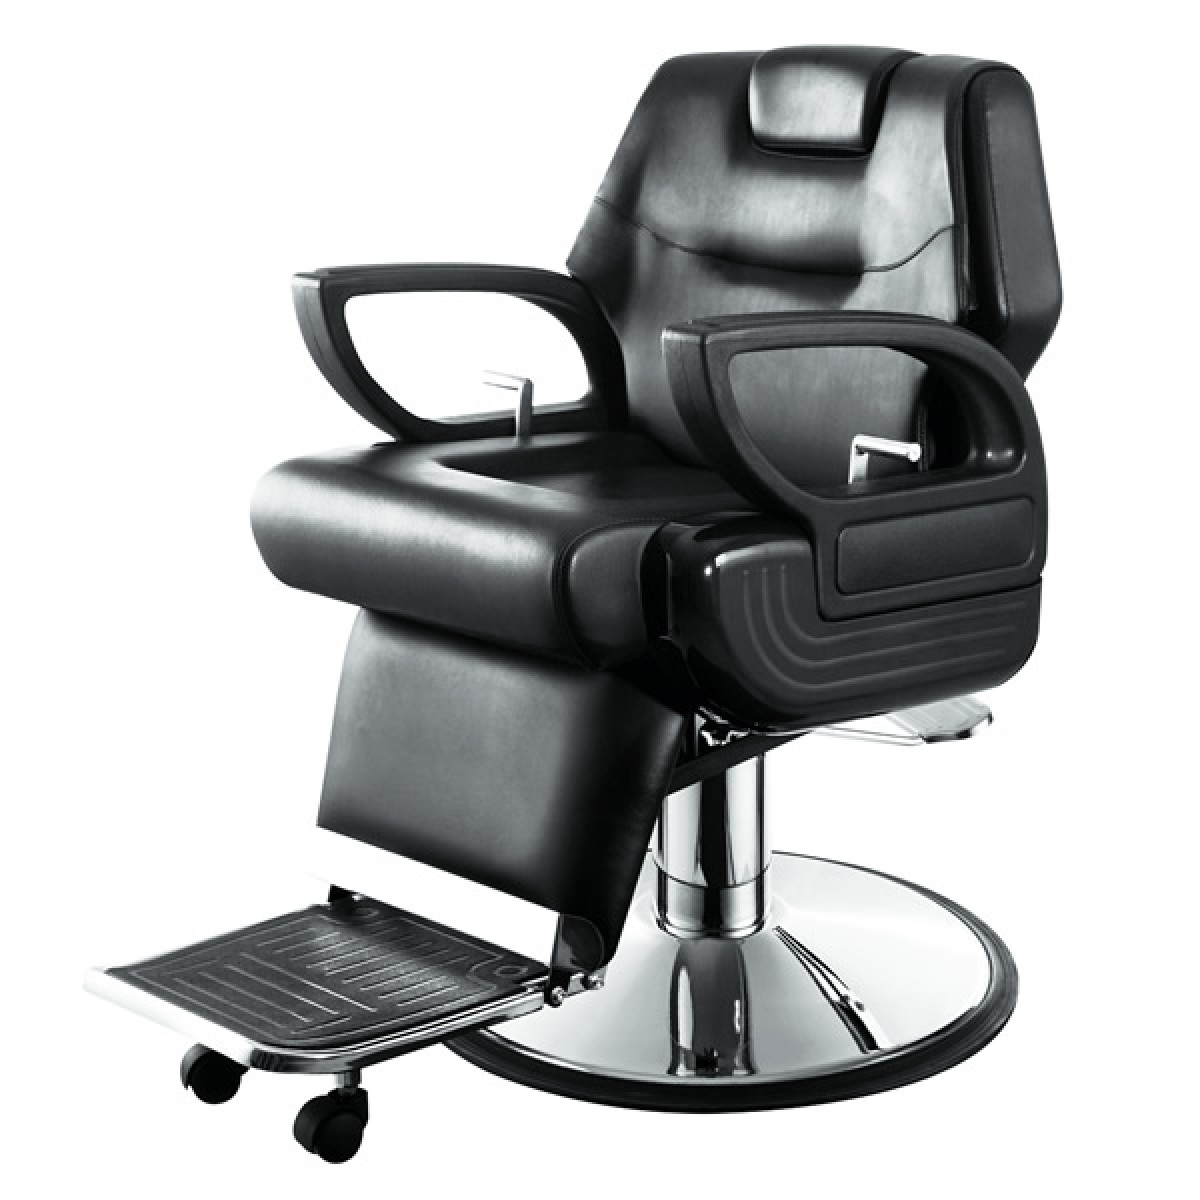 Quot Caesar Quot Barber Chair With Heavy Duty Hydraulic Pump